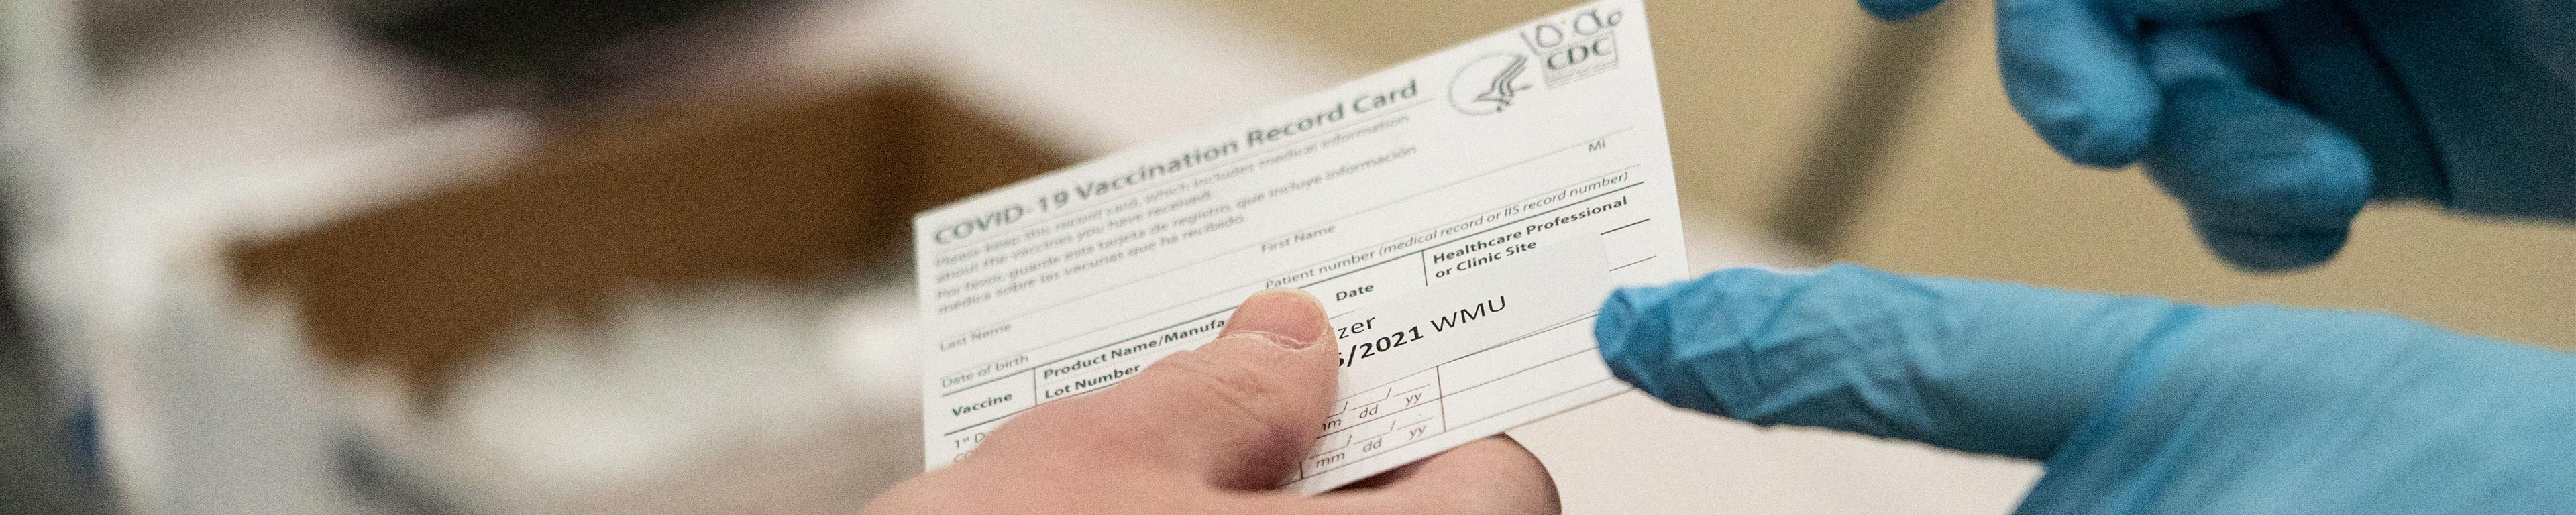 A nursing handing a vaccination record card to someone.